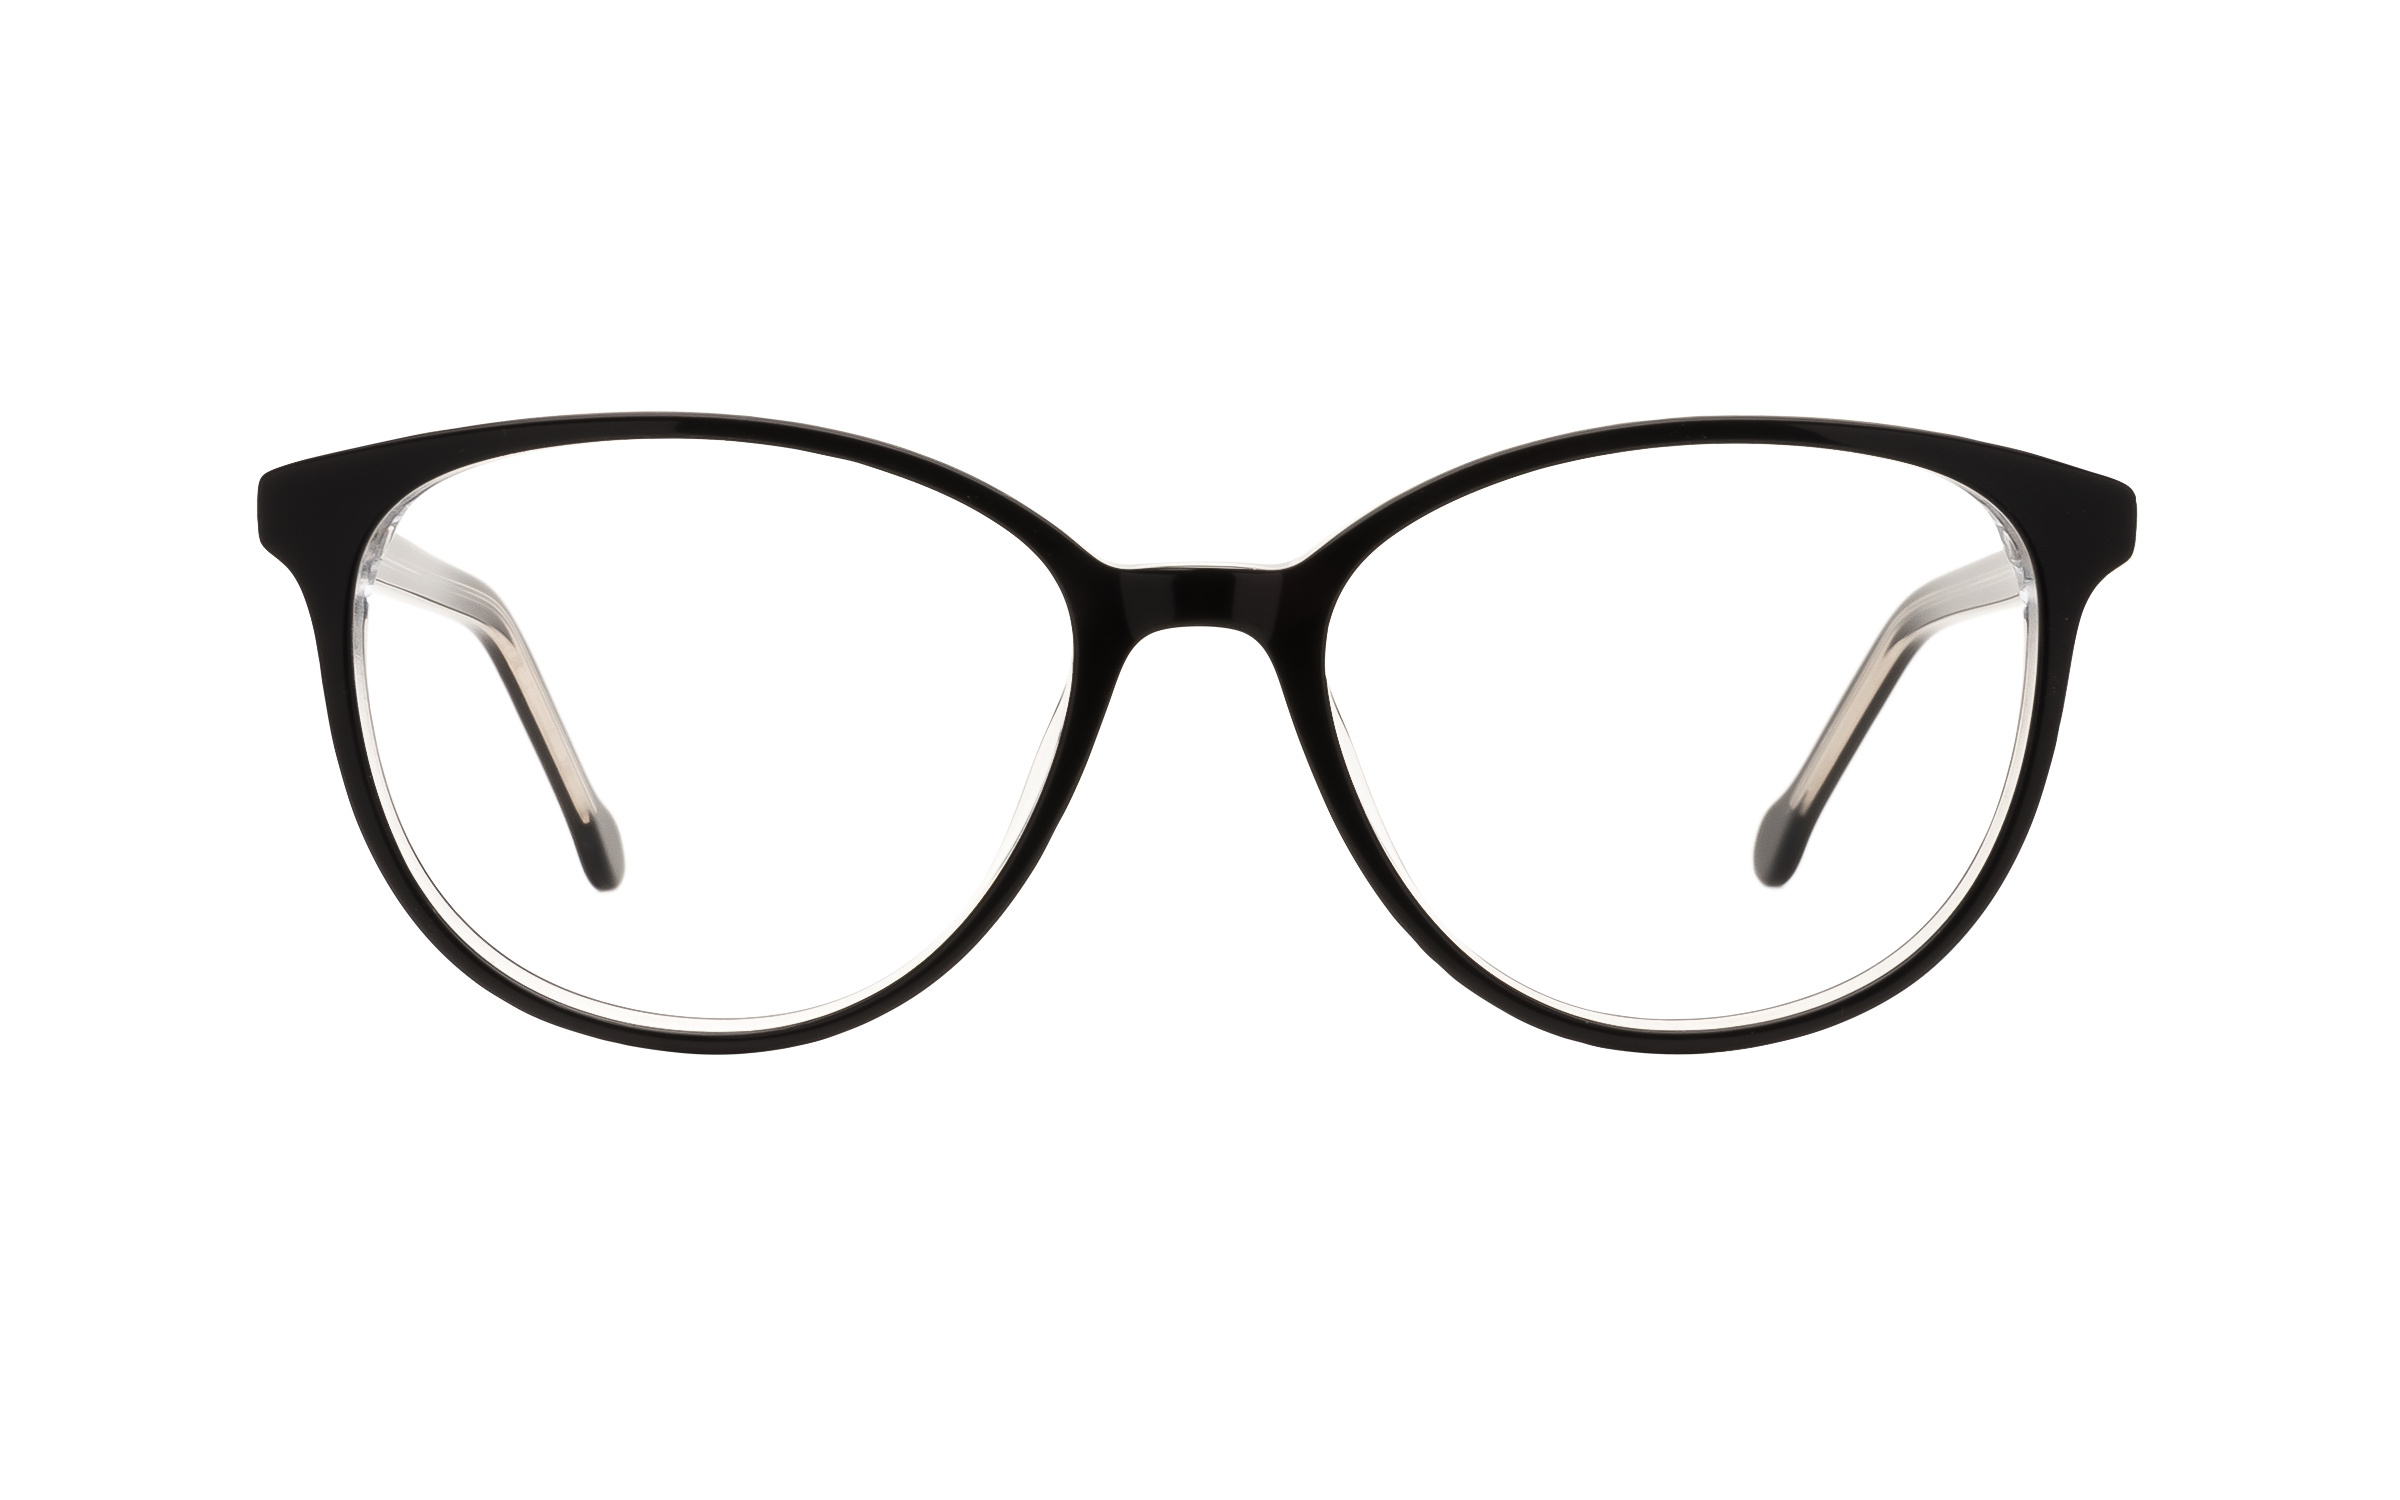 Laval unisex Black Glasses - Clearly Glasses Online